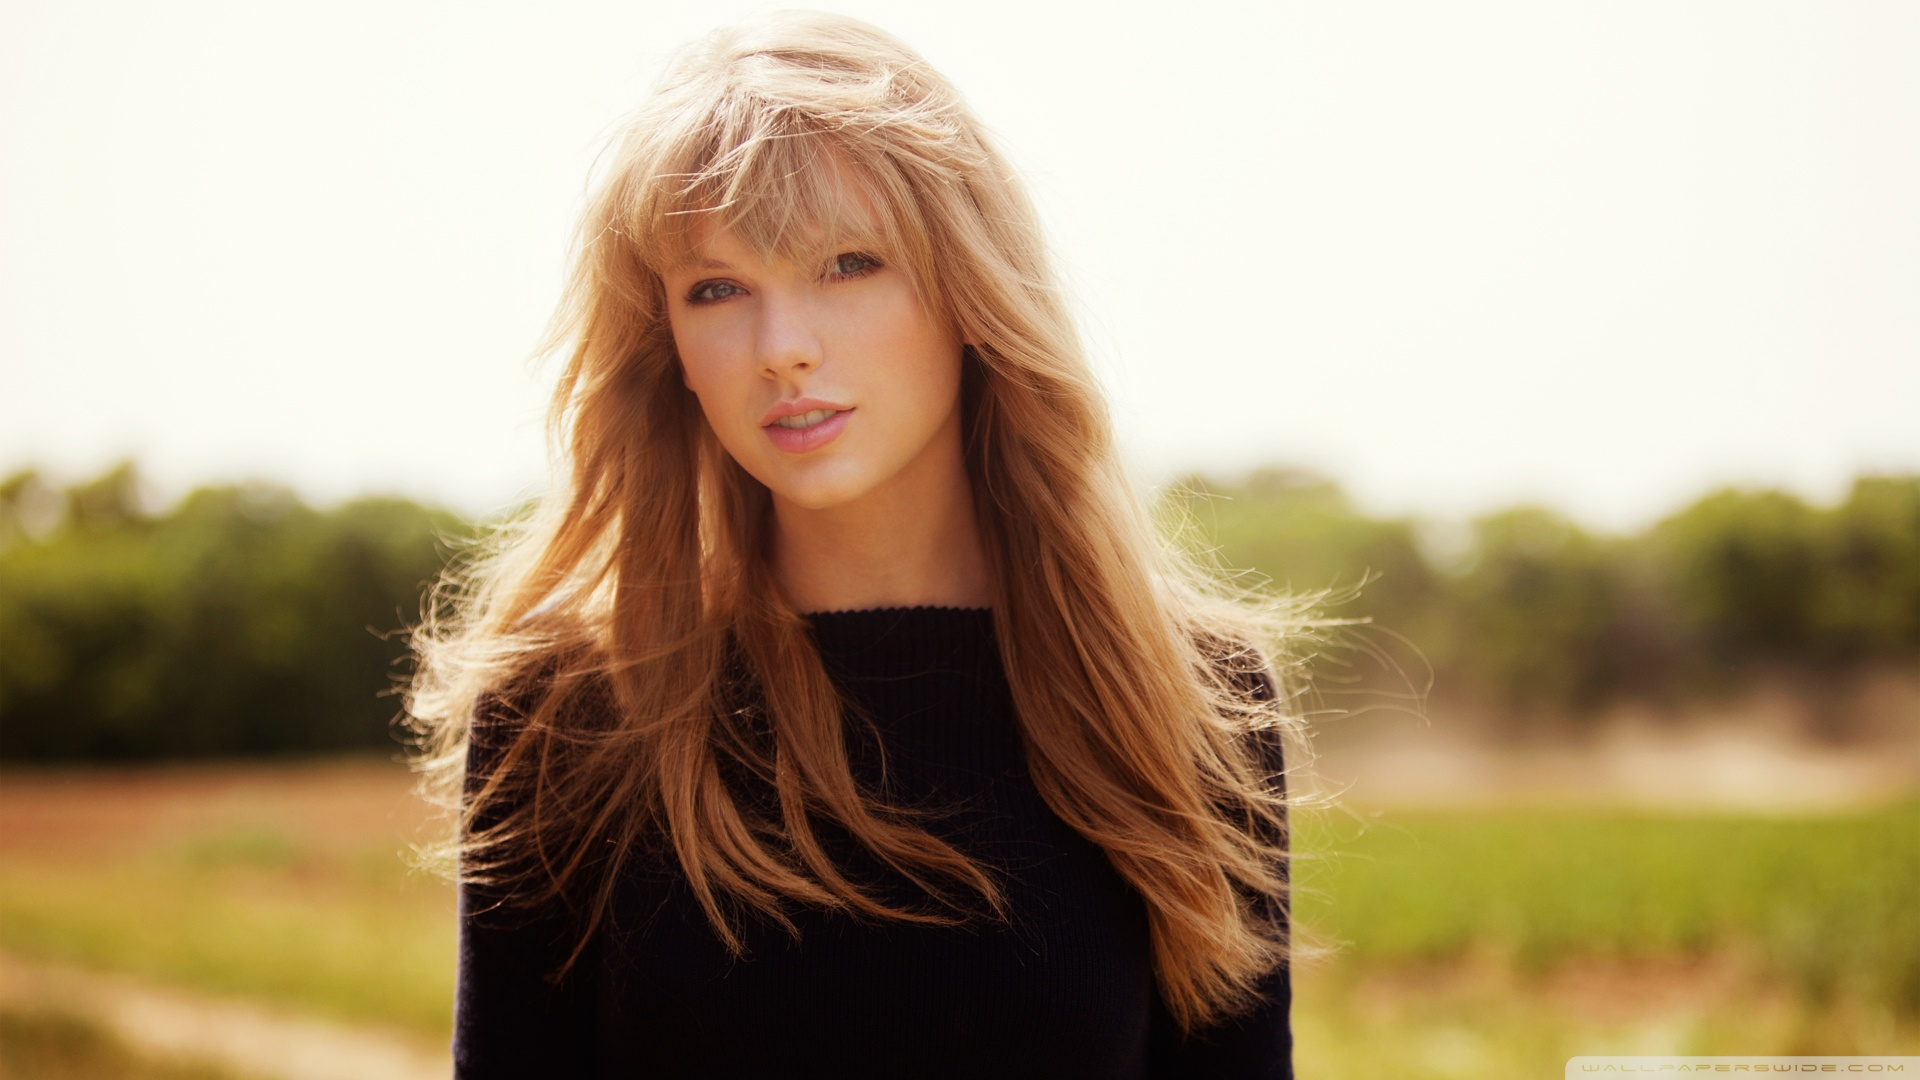 Taylor Swift 2013 wallpaper High Quality Wallpapers 1920x1080